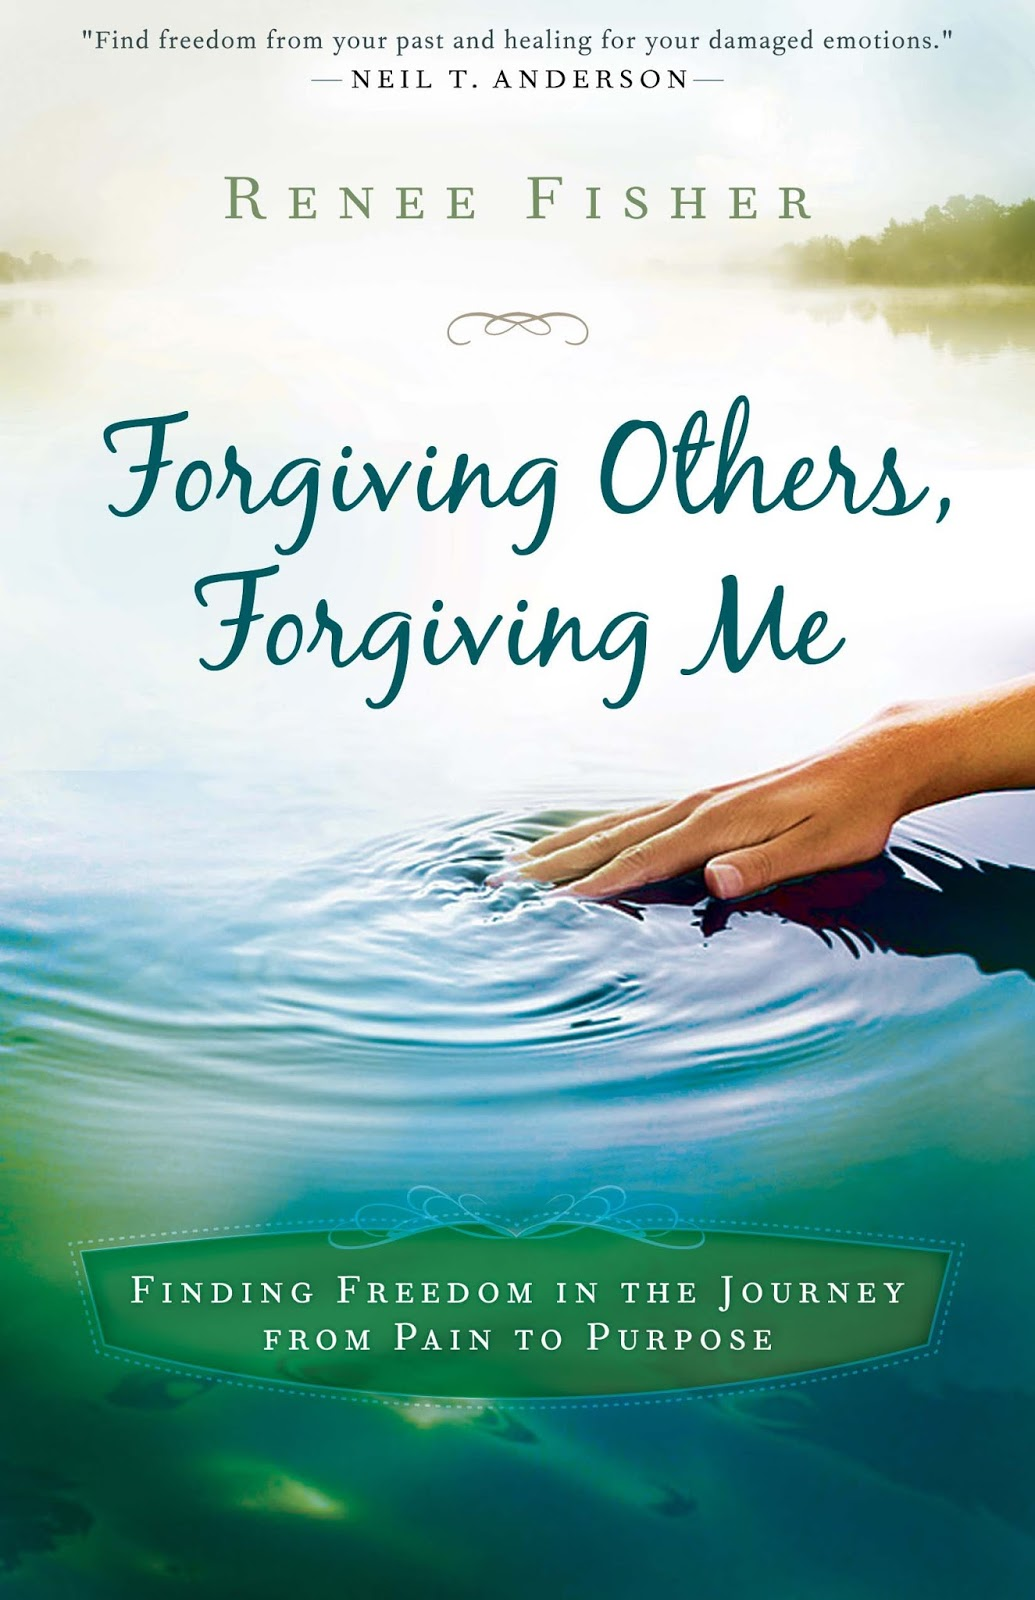 Quotes About Forgiving Others: Church 4 Chicks!: Forgiveness: A Good Place To Start! A